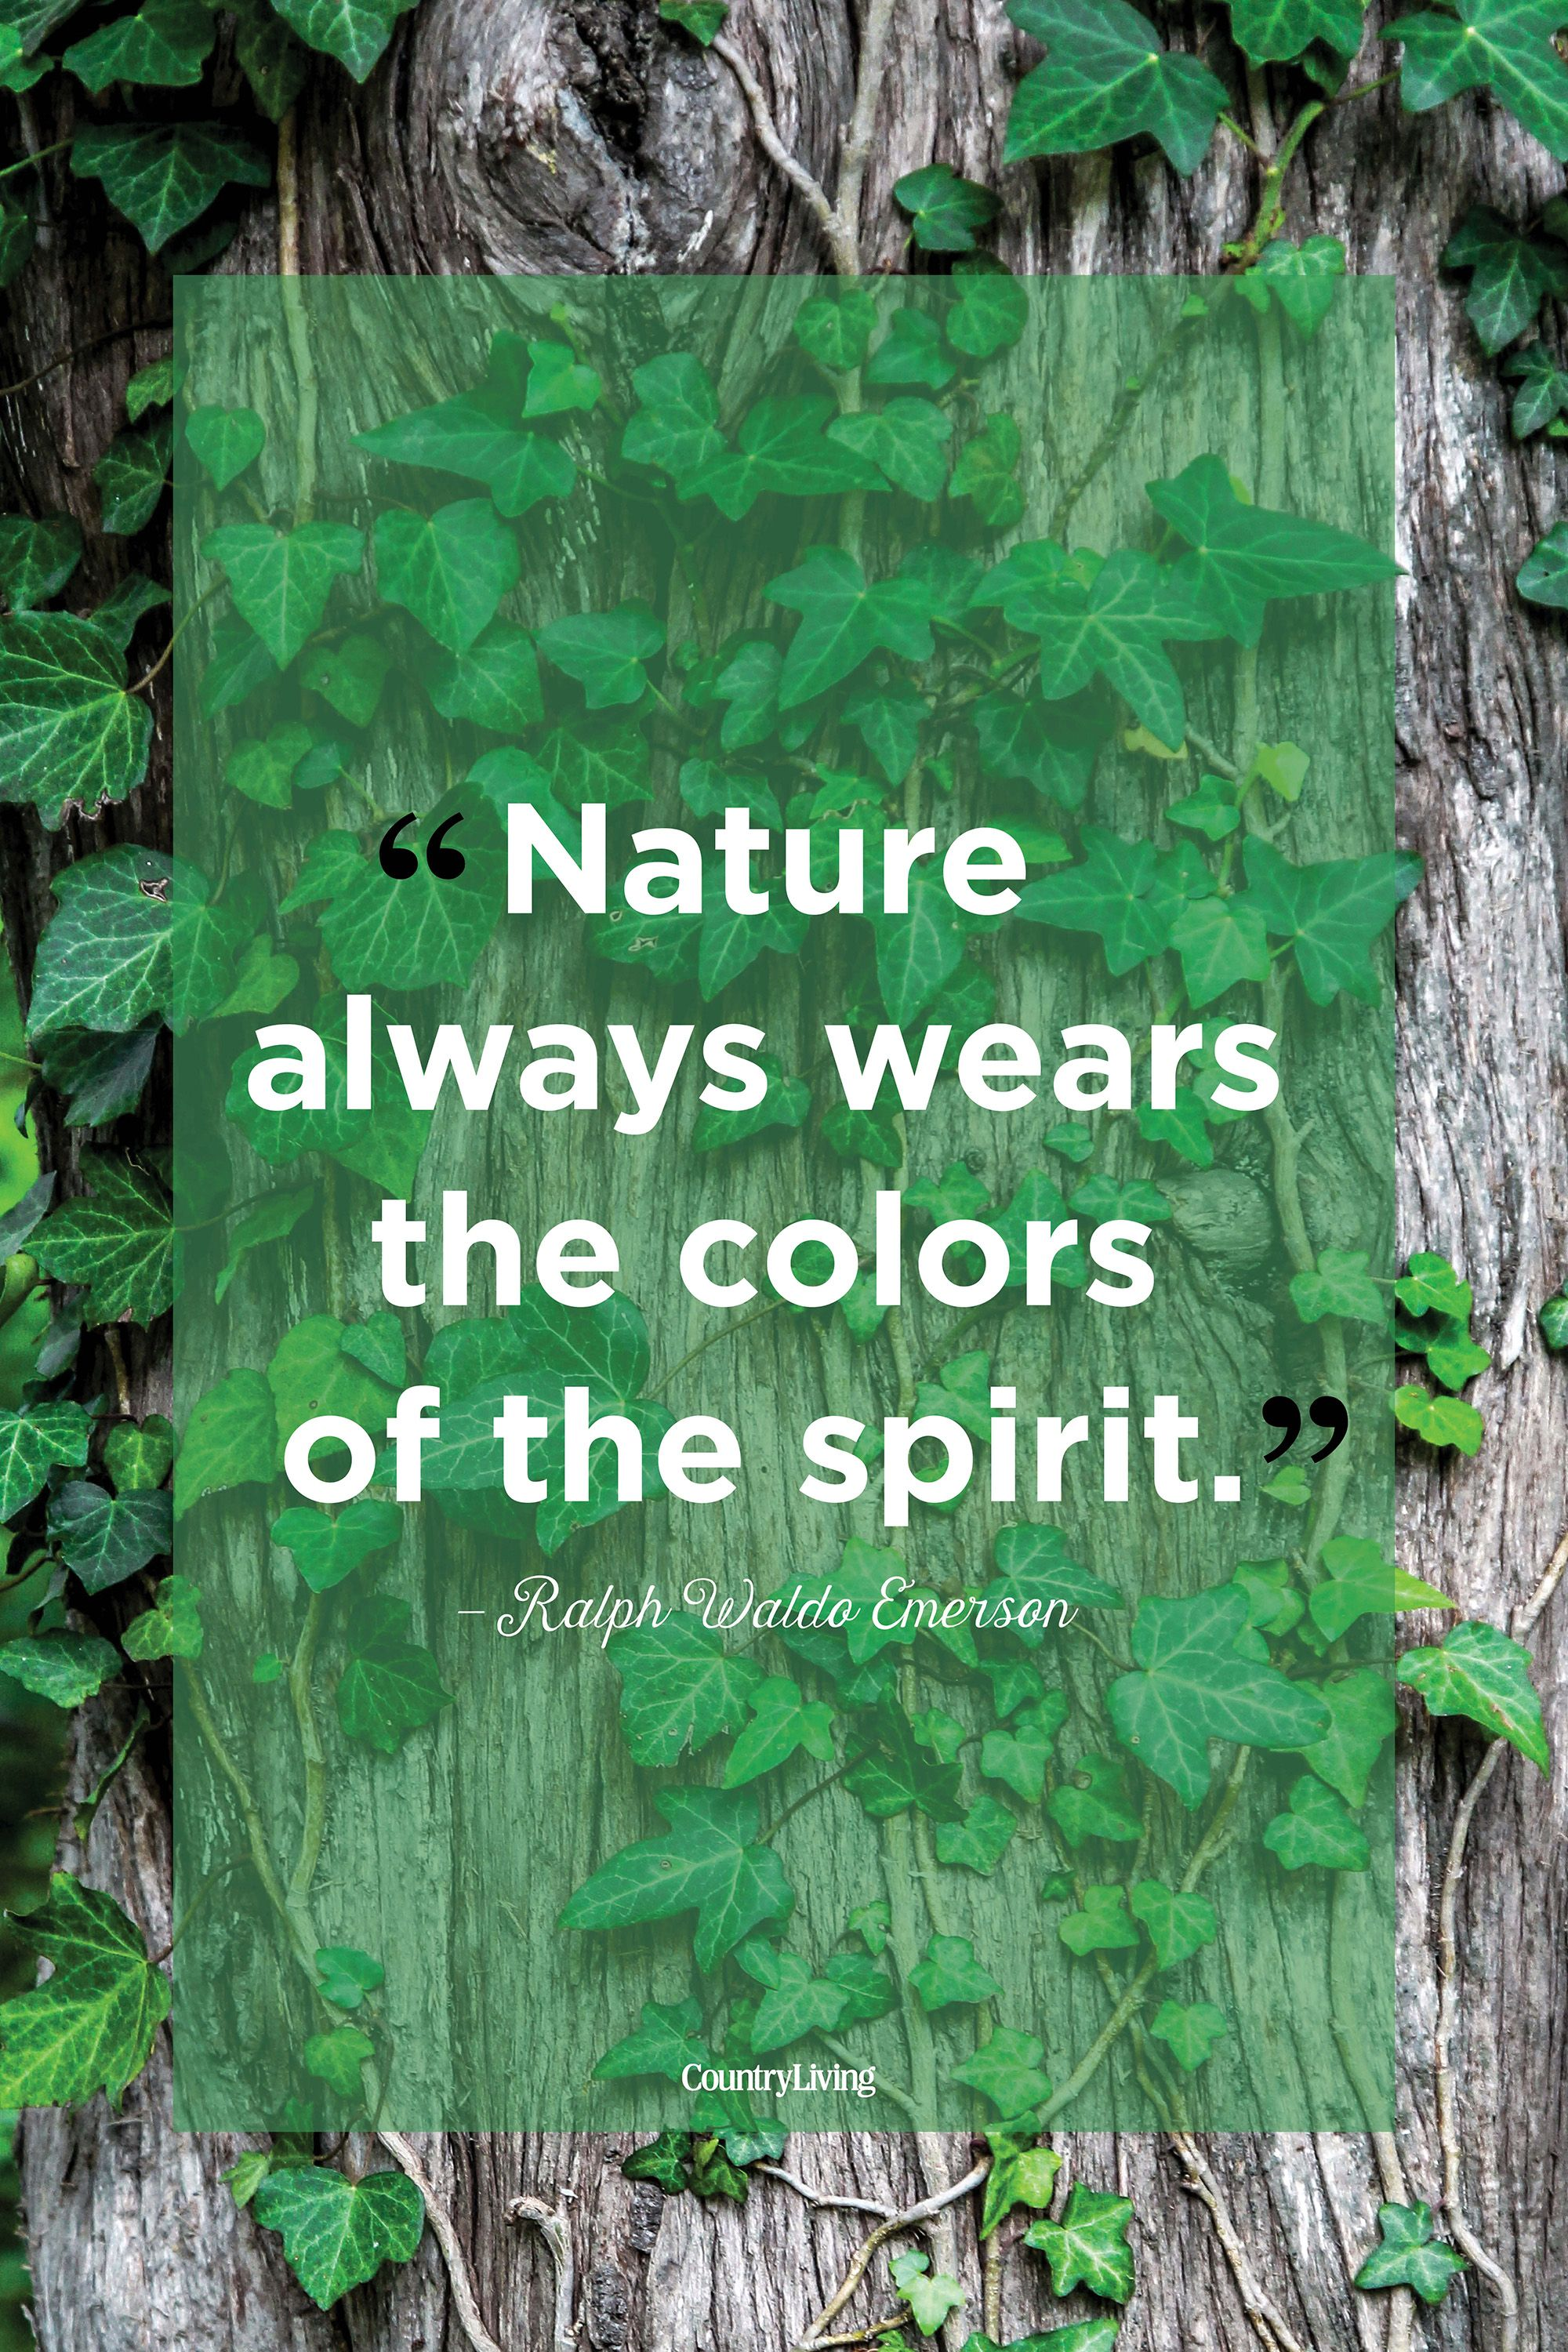 Nature Beauty Sayings and Nature Beauty Quotes | Wise Sayings